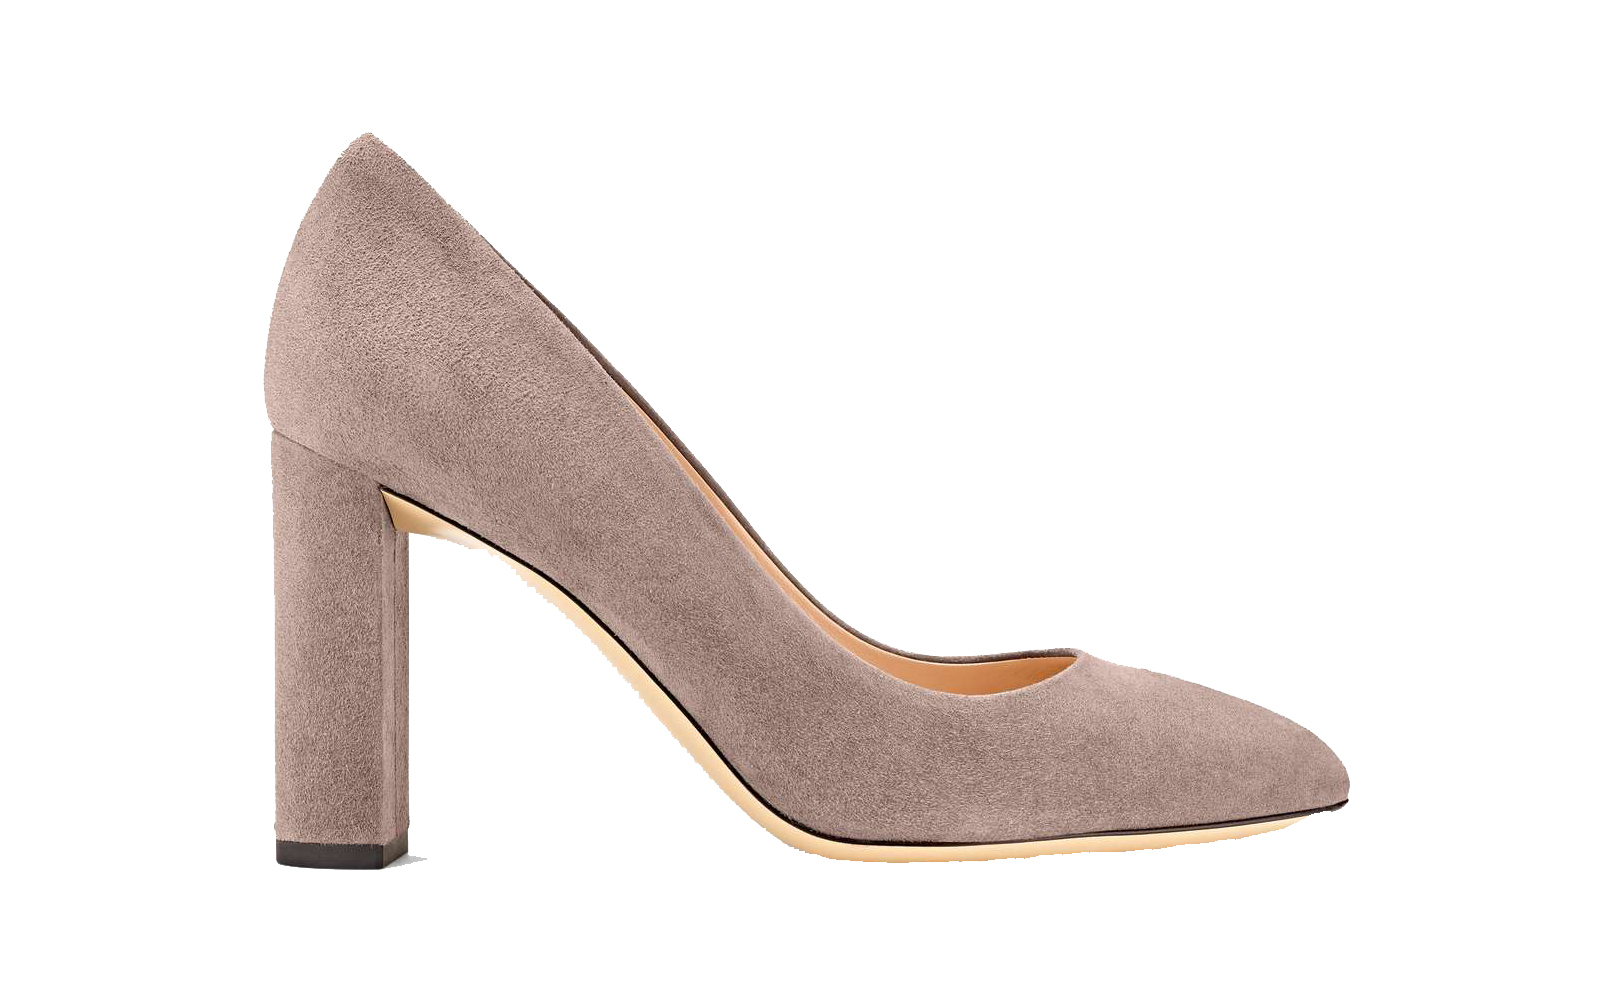 4eba268625cd9 The 13 Most Comfortable Heels for 2019, According to Reviews ...